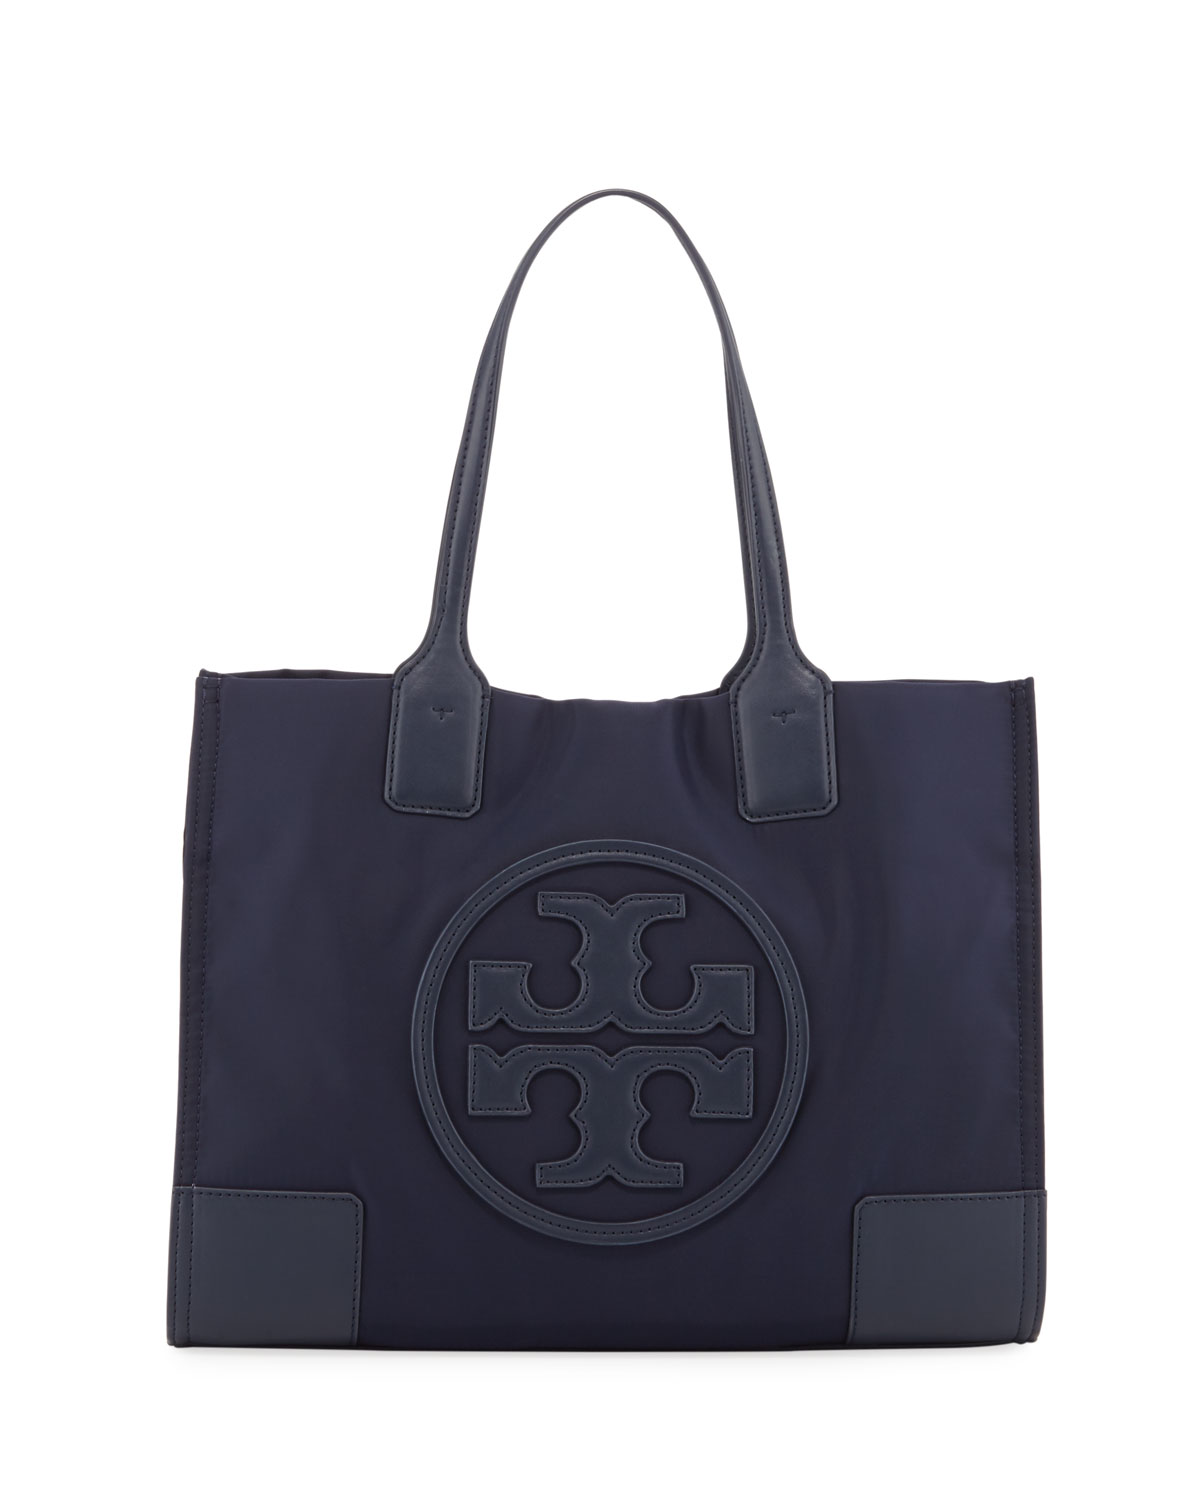 c9b35ef3d475 Tory Burch Ella Studded Mini Nylon Tote